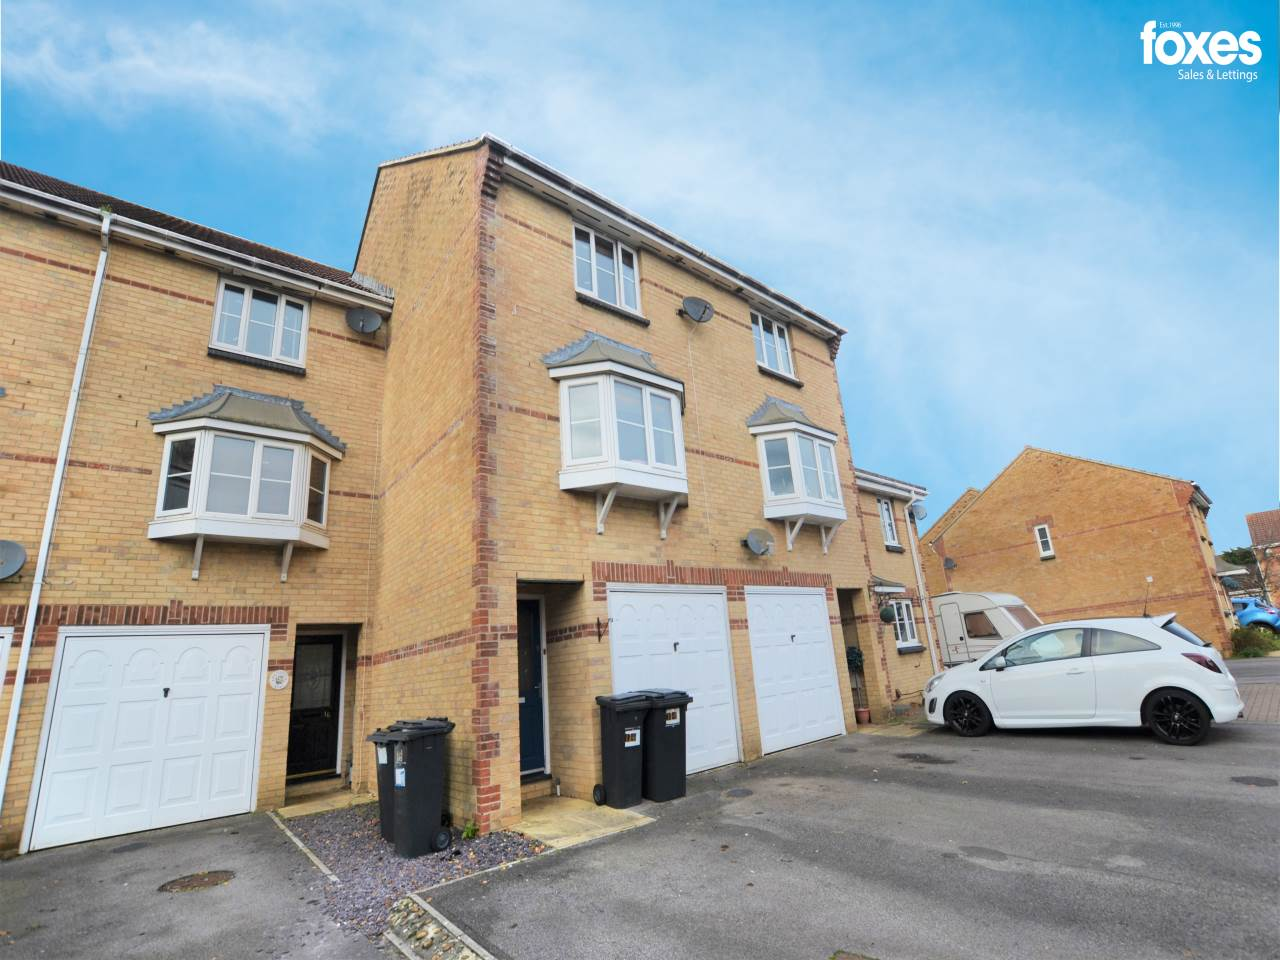 3 bed house to rent in Knighton Heath, Bournemouth, BH11